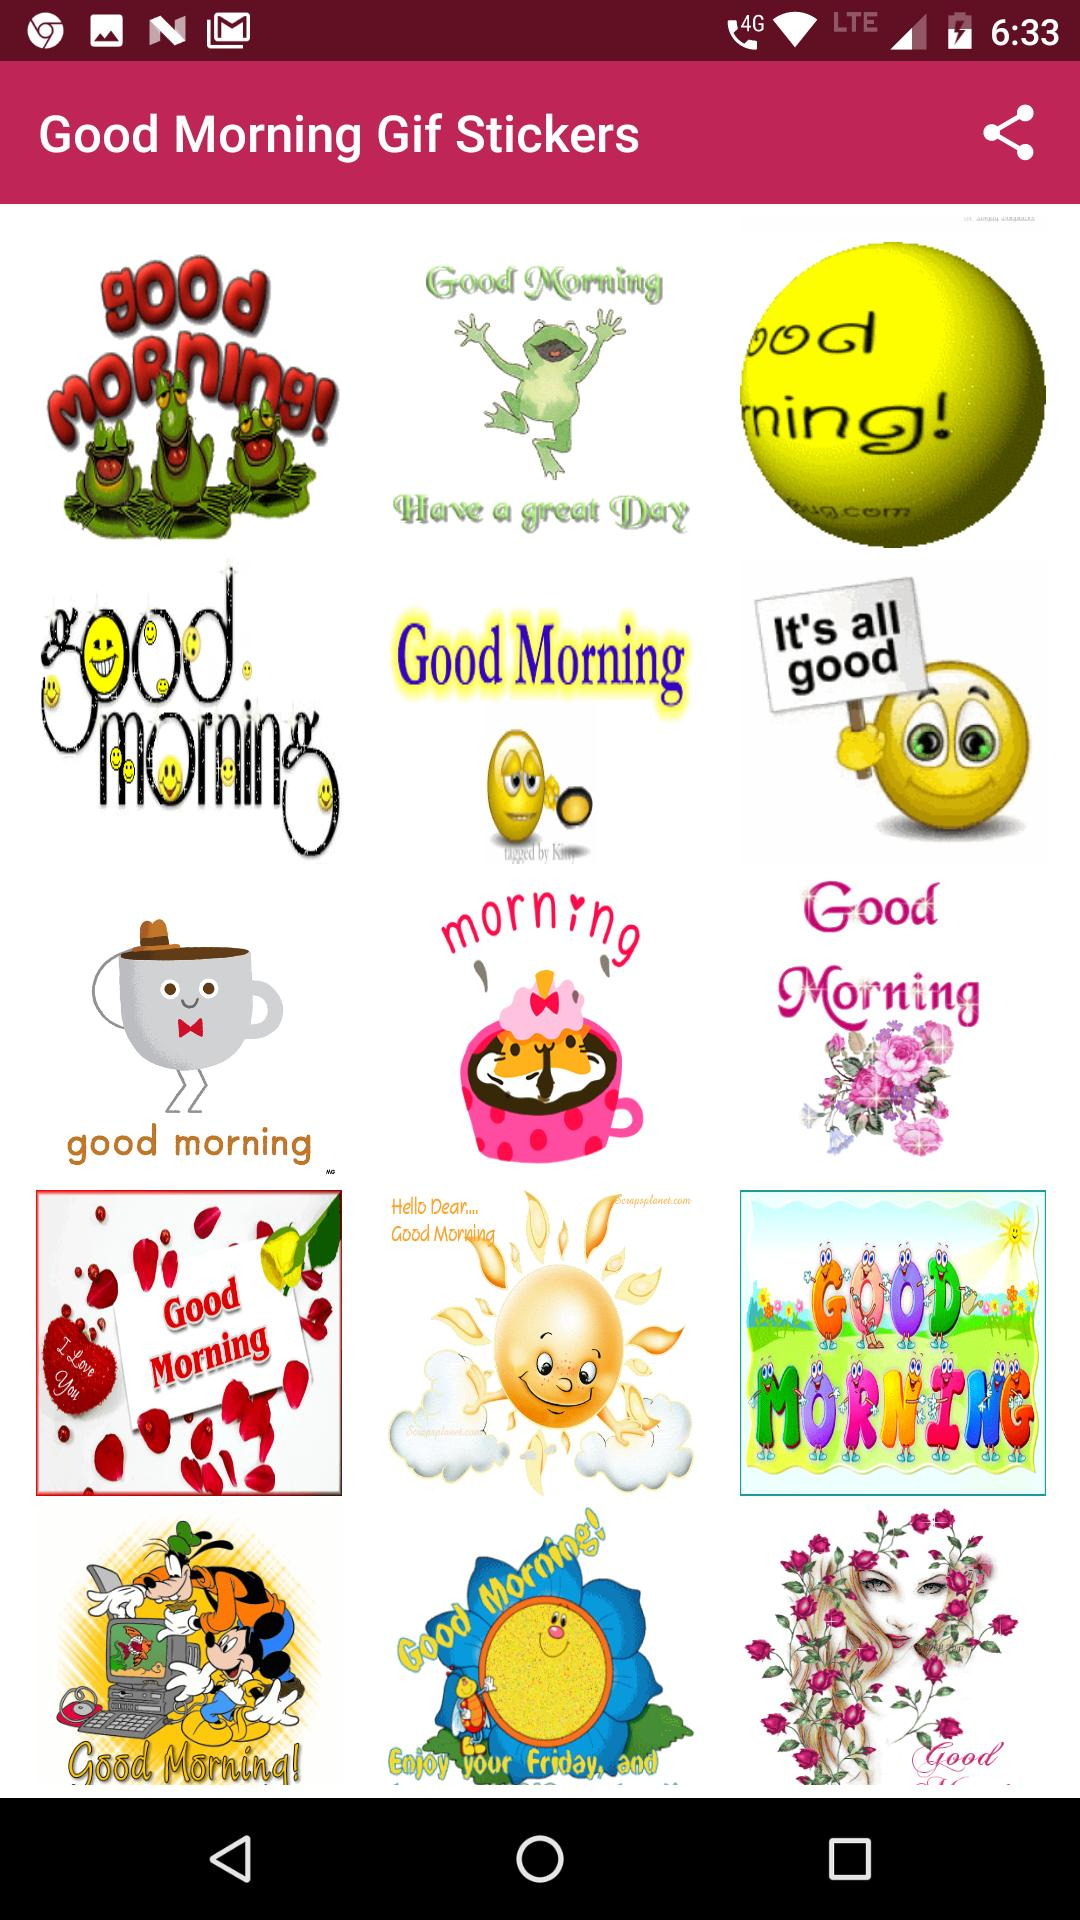 Morning Gif Stickers for Android - APK Download